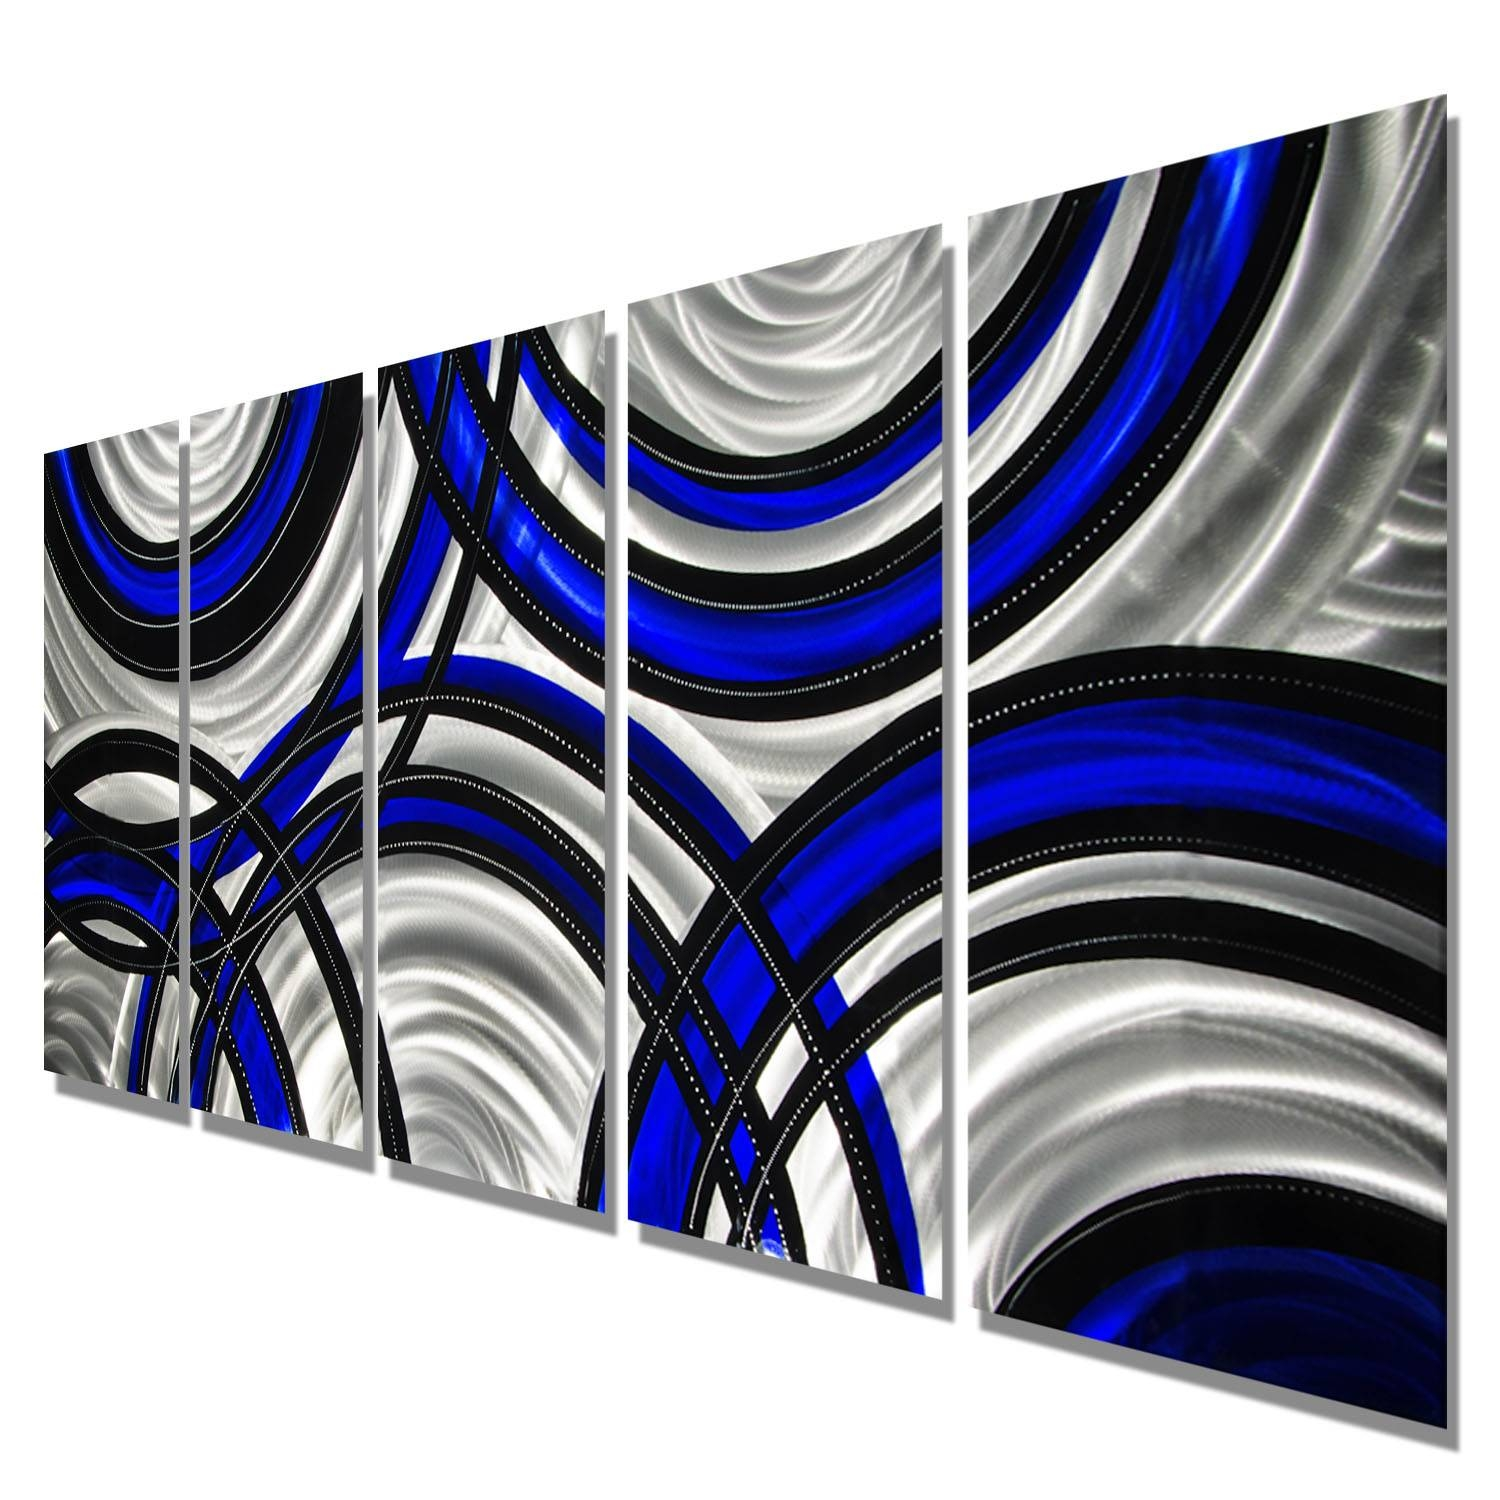 Blue Synergy – Blue, Black And Silver Metal Wall Art – 5 Panel Pertaining To Most Recent Blue And Silver Wall Art (View 2 of 20)